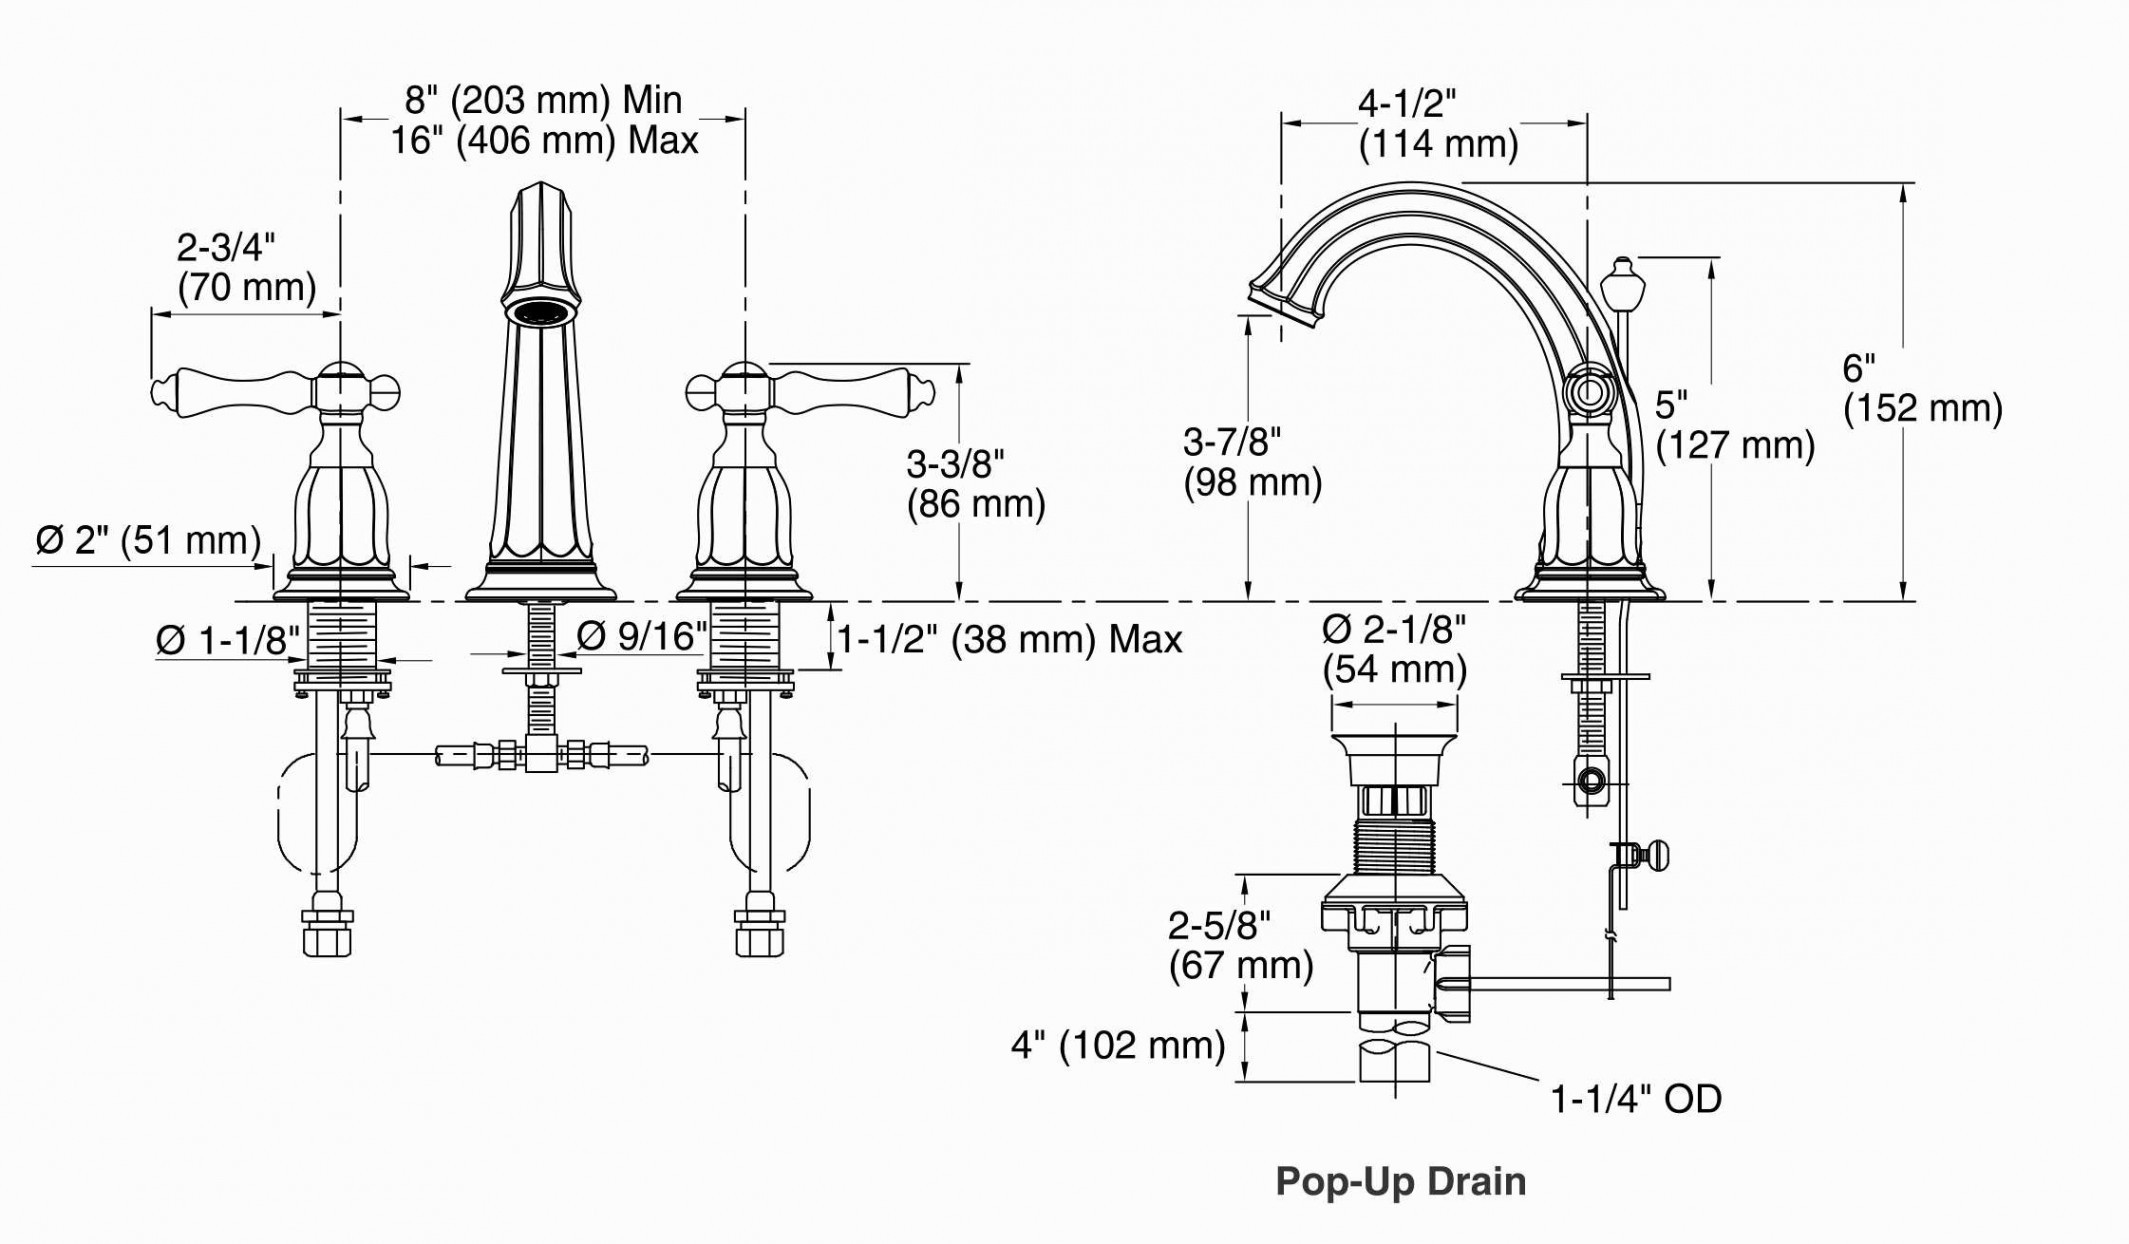 Bathtub Drain Parts Diagram Kitchen Sink Faucet Parts Diagram New Bathroom Faucet Parts Diagram Of Bathtub Drain Parts Diagram All You Need to Know About Bathtub Drain